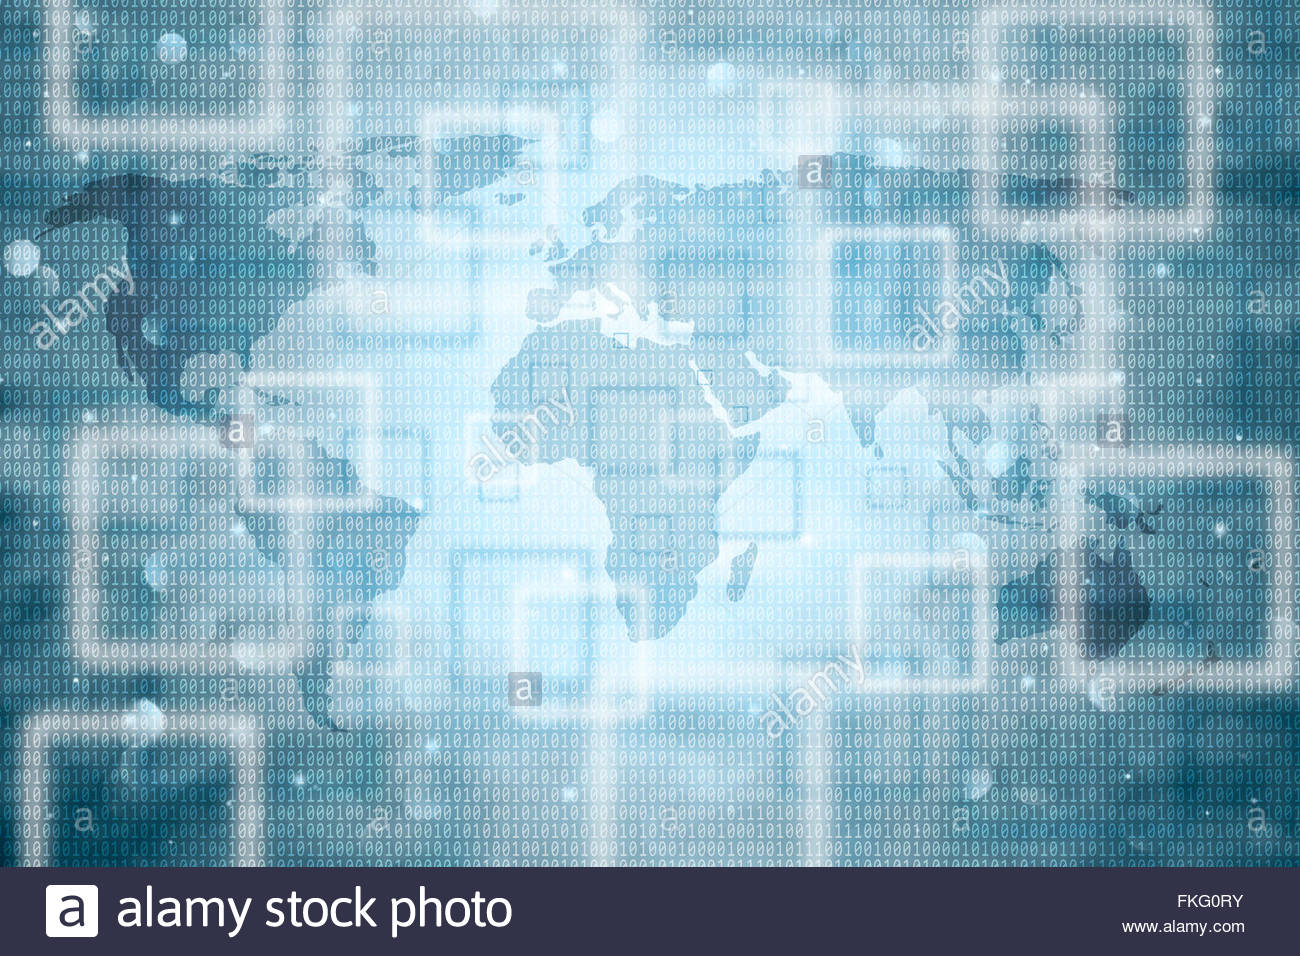 Creative world map abstract background stock photos creative world blurred abstract world map with binary numbers background conceptual world map with binary code background gumiabroncs Image collections